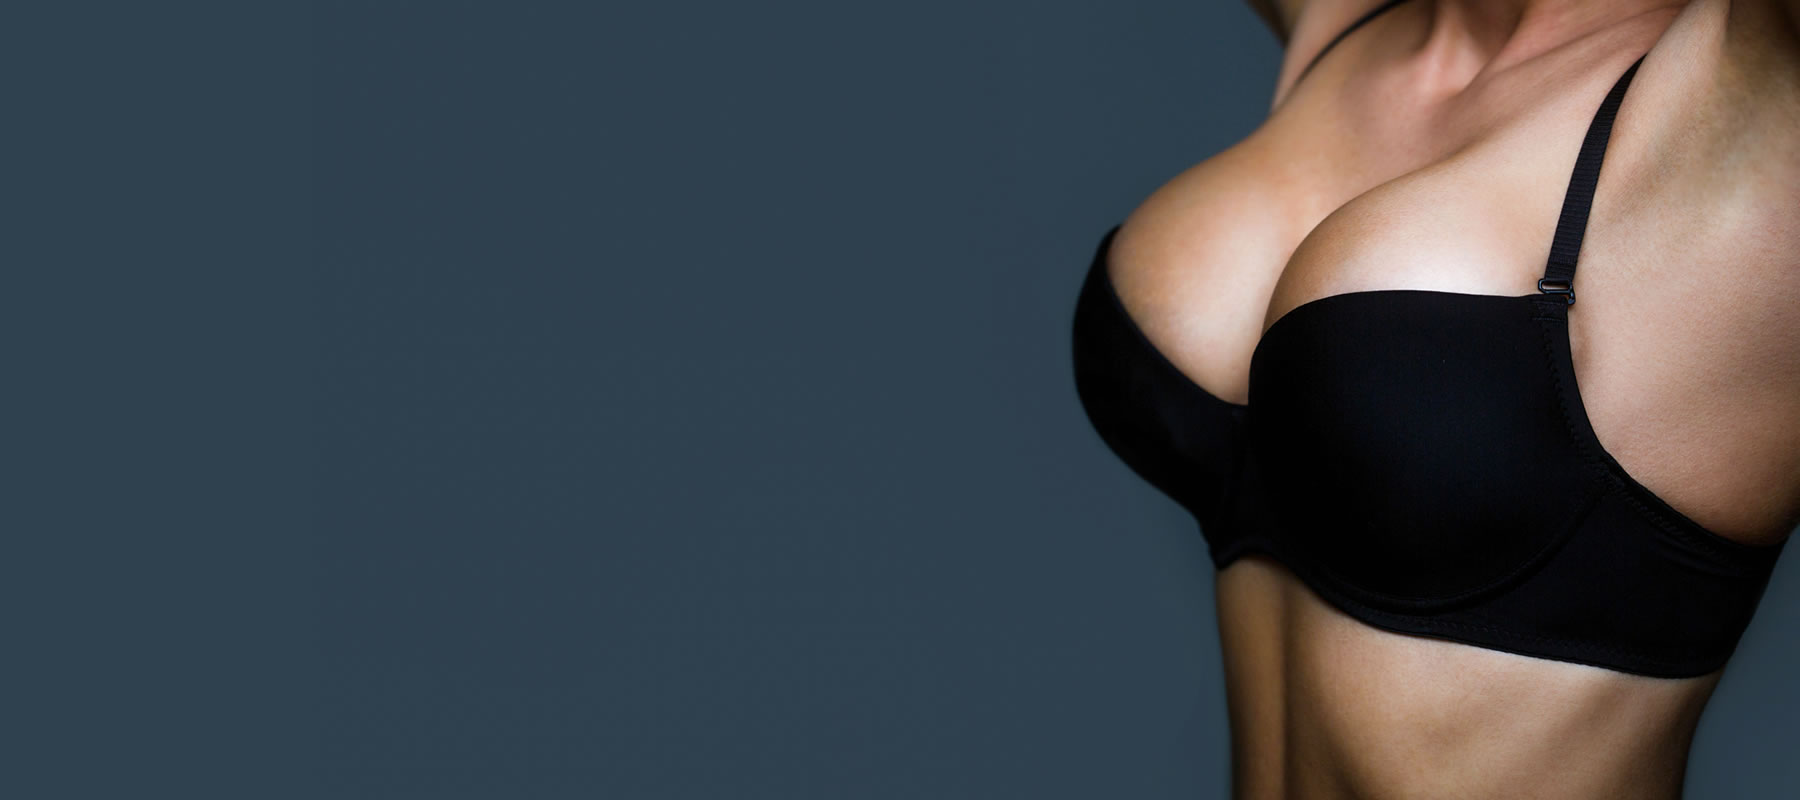 Breast Augmentation Miami Florida